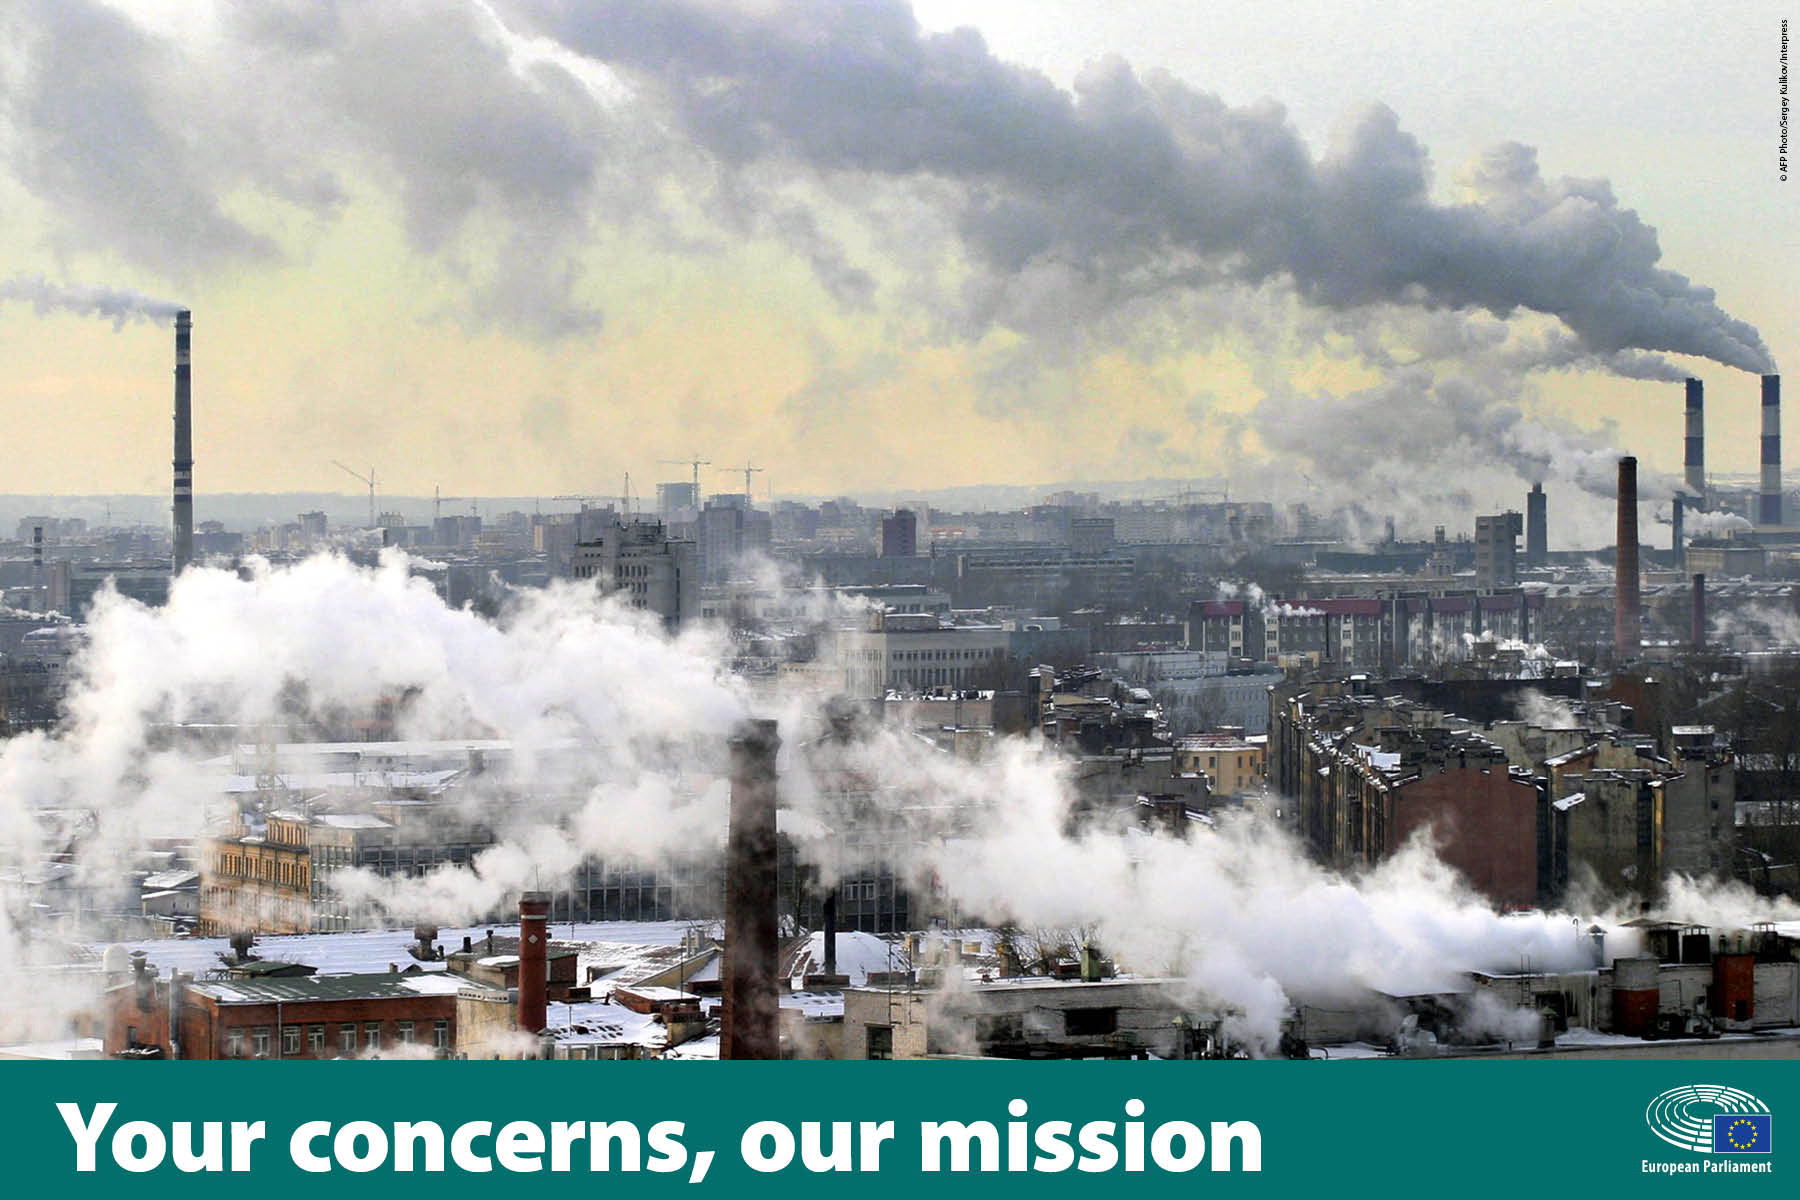 What is carbon neutrality and how can it be achieved by 2050? | News |  European Parliament